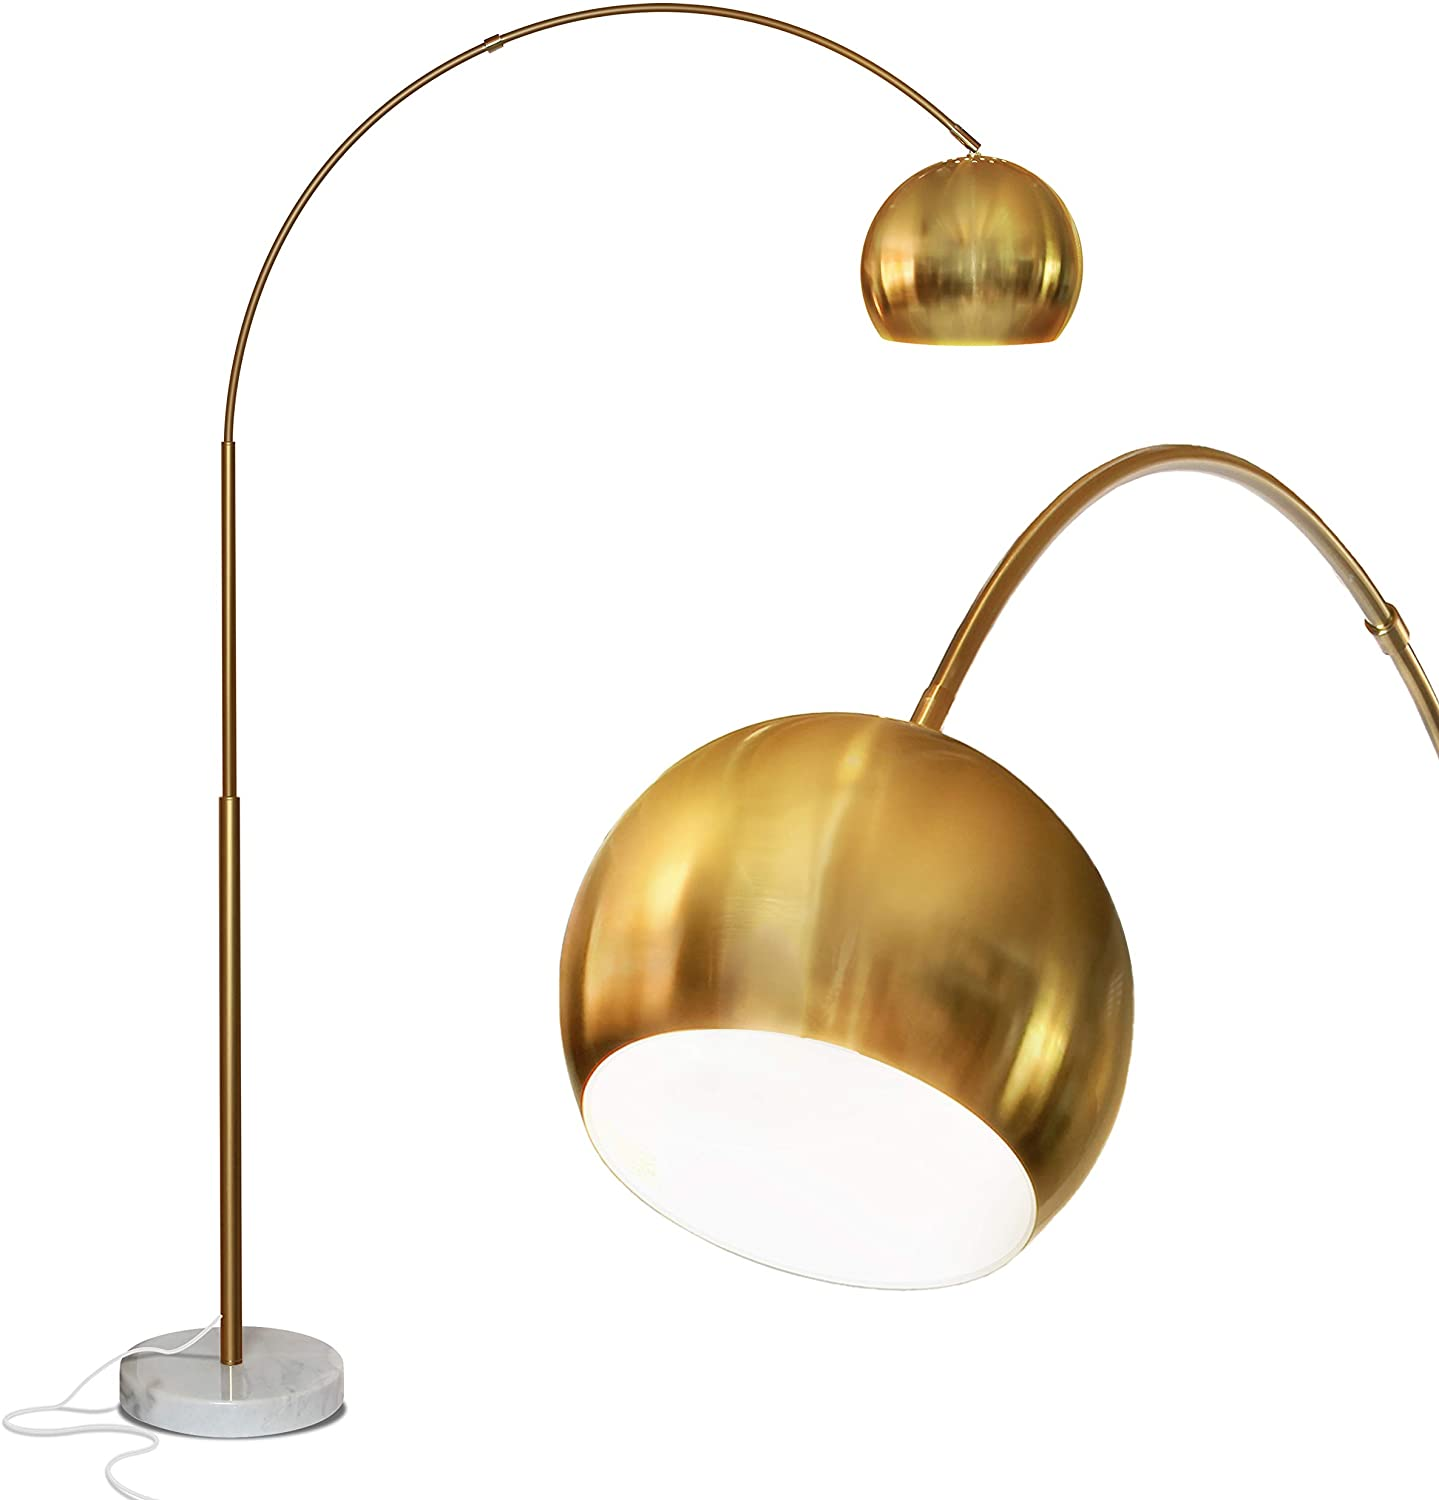 Amazon Com Brightech Olivia Over The Couch Arc Floor Lamp With Globe Shade Matches Your Living Room Decor Standing Light For Bedroom Office Tall Gold Aka Brass Lighting Home Improvement